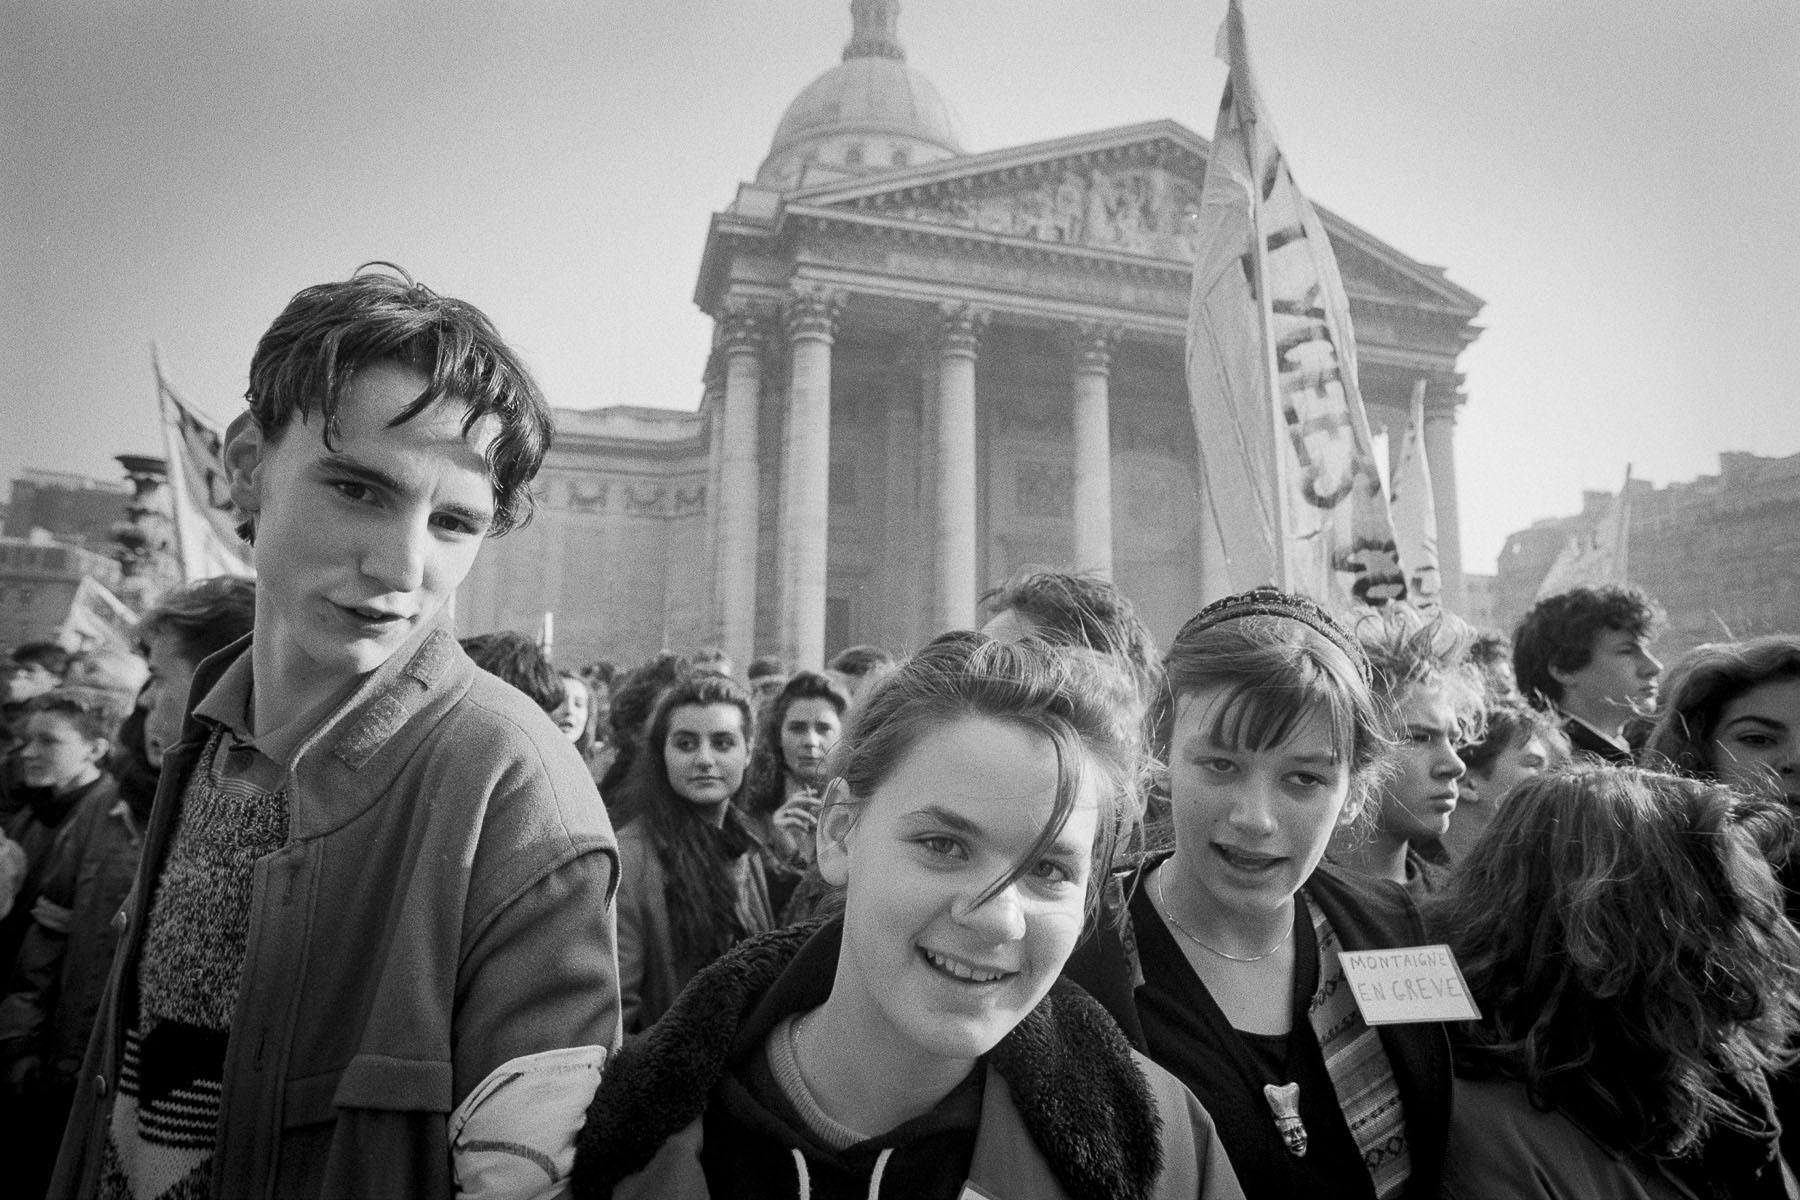 High school students demonstration against Devaquet minister reform draft in the Quartier Latin on november 1986